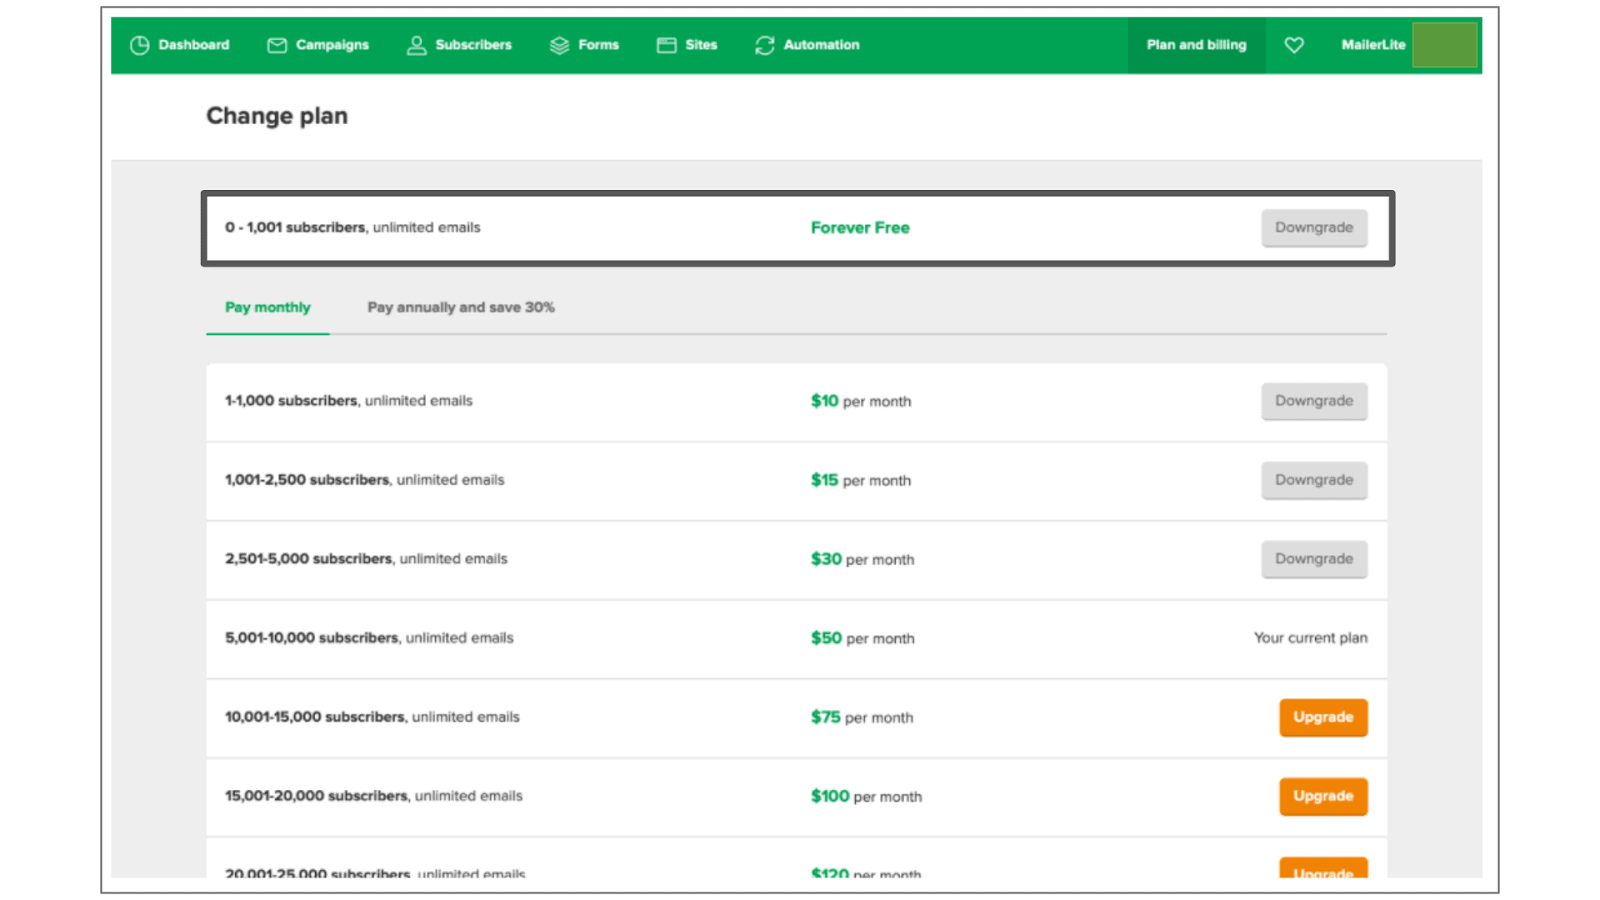 MailerLite Downgrade and Upgrade page